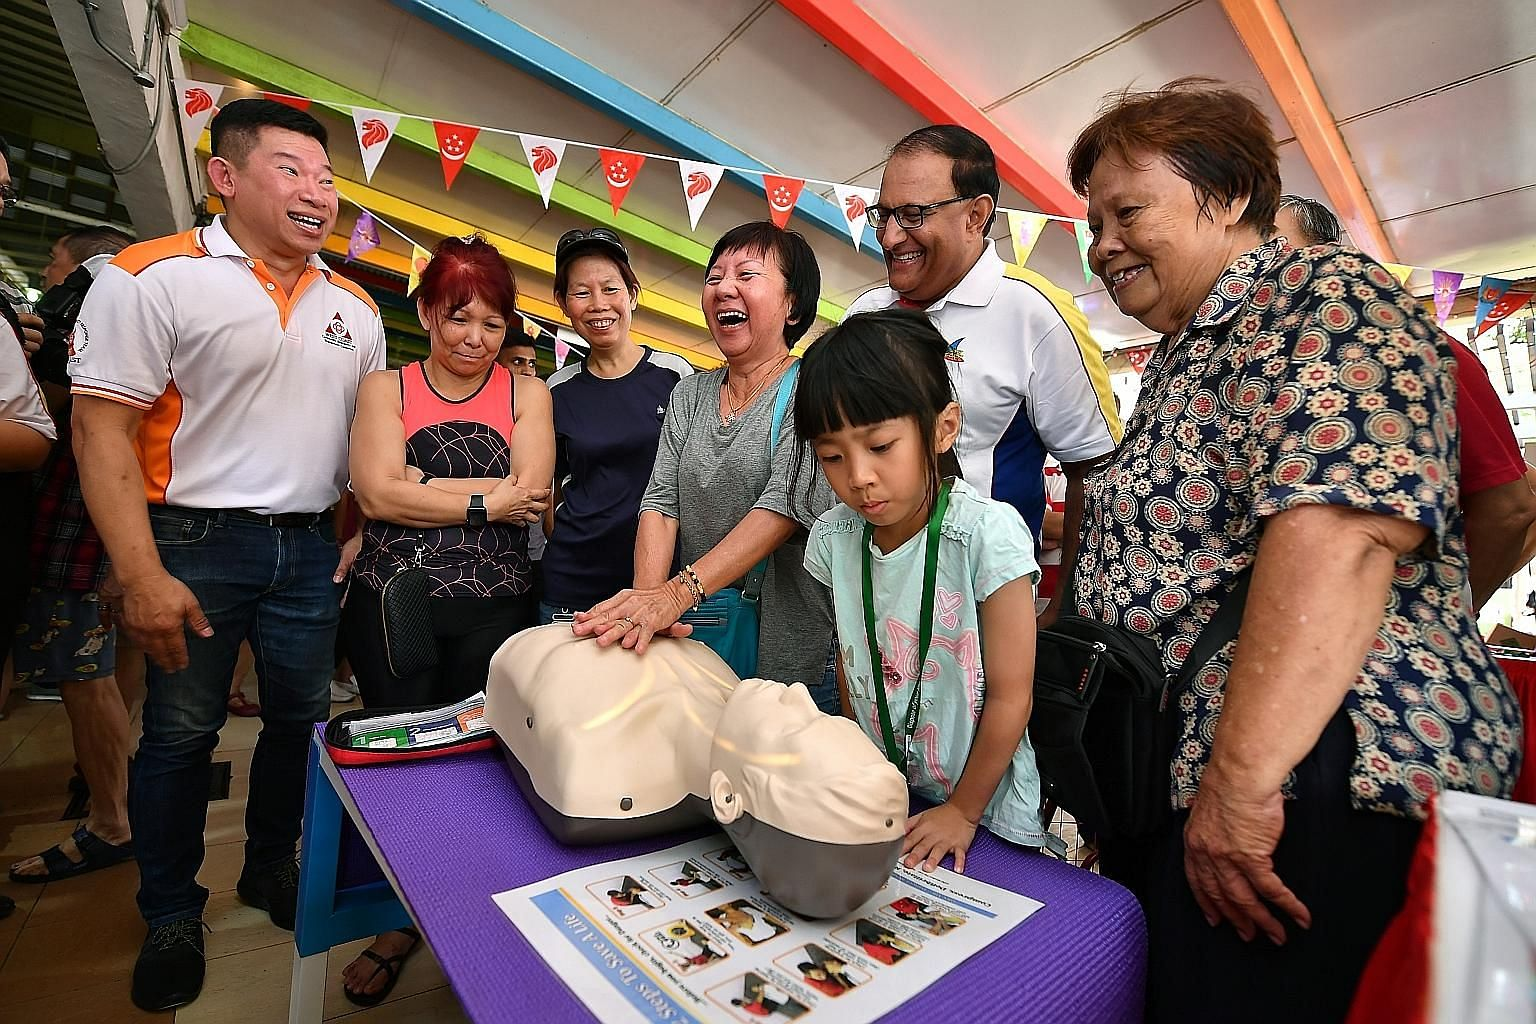 Above: Retiree Tan Boon Tien, 84, being taught how to use a fire extinguisher by members of the Singapore Civil Defence Force at a community event at West Coast Market Square yesterday. Right: West Coast GRC MP S. Iswaran watching people learn how to